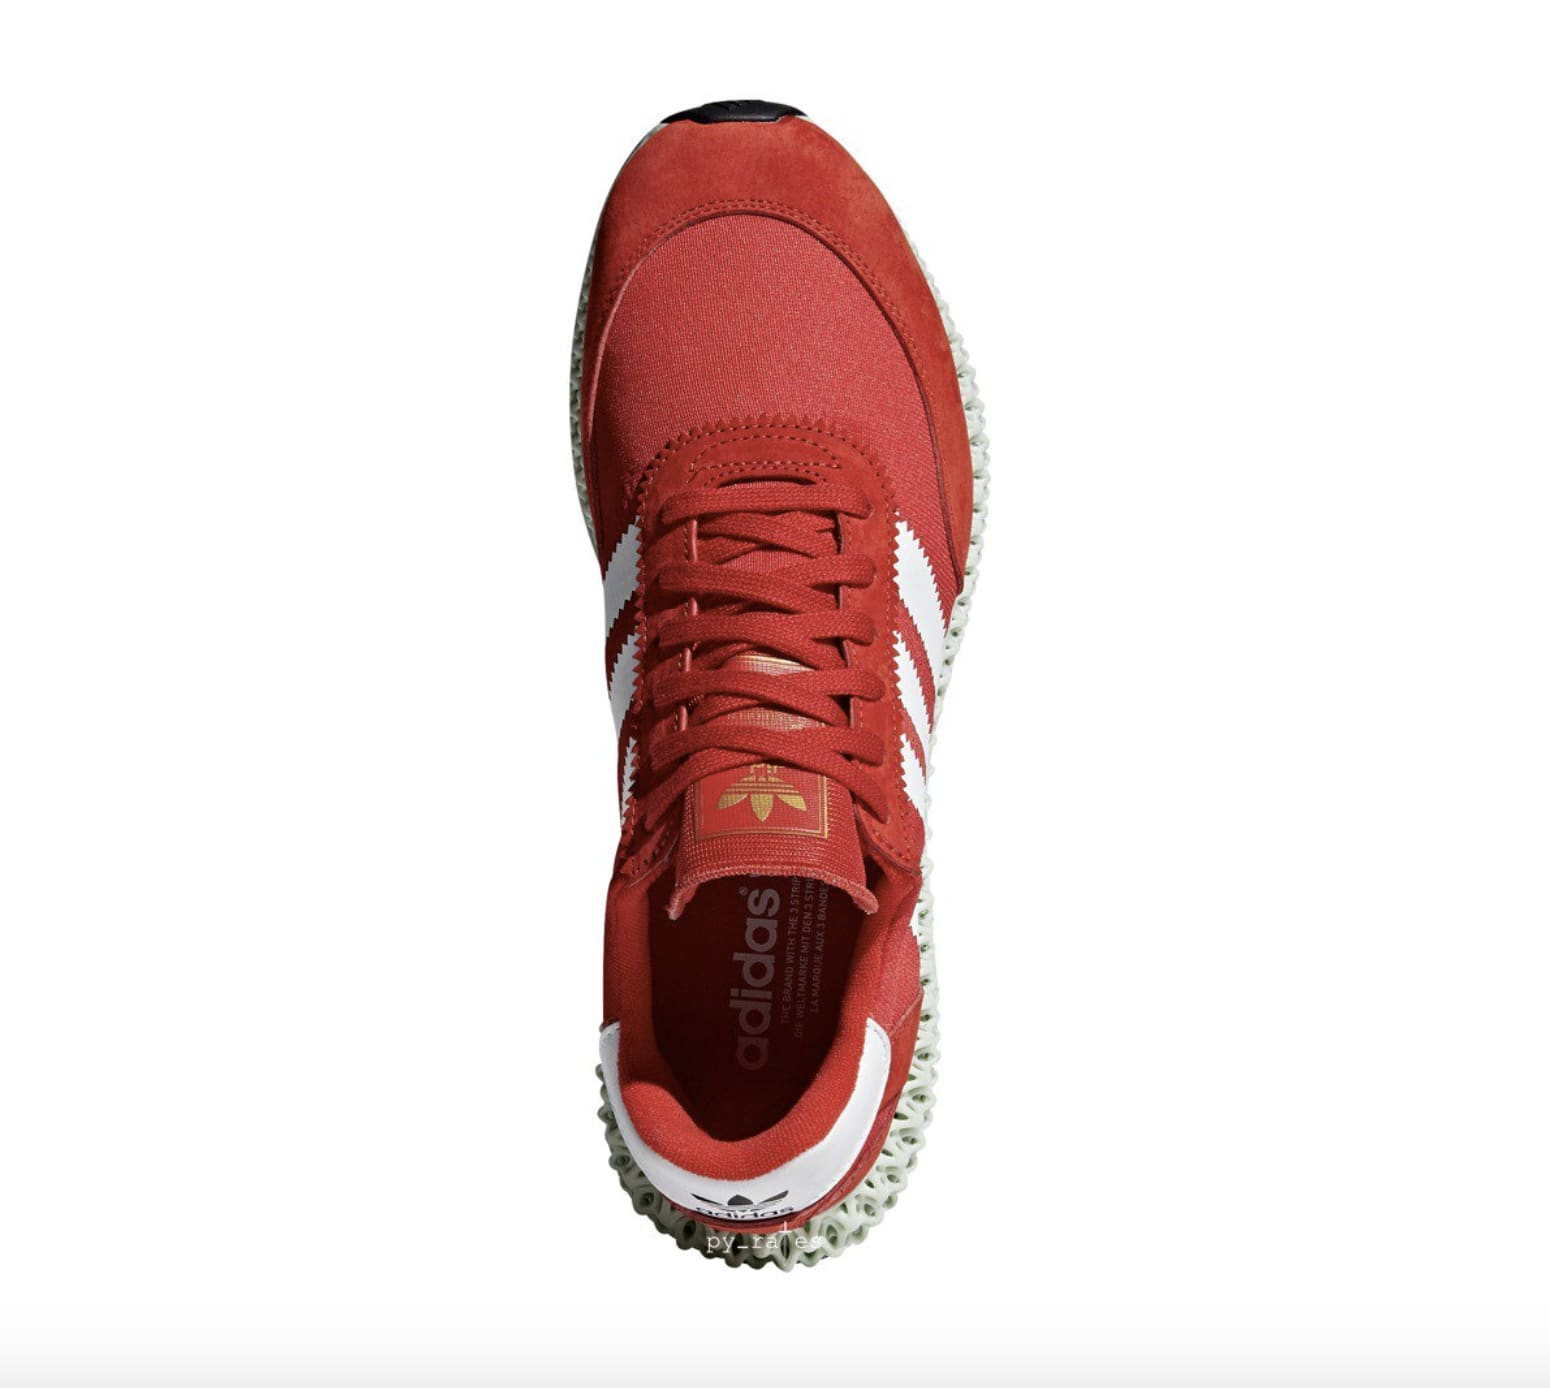 Adidas 4D-5923 'Red/White' (Top)